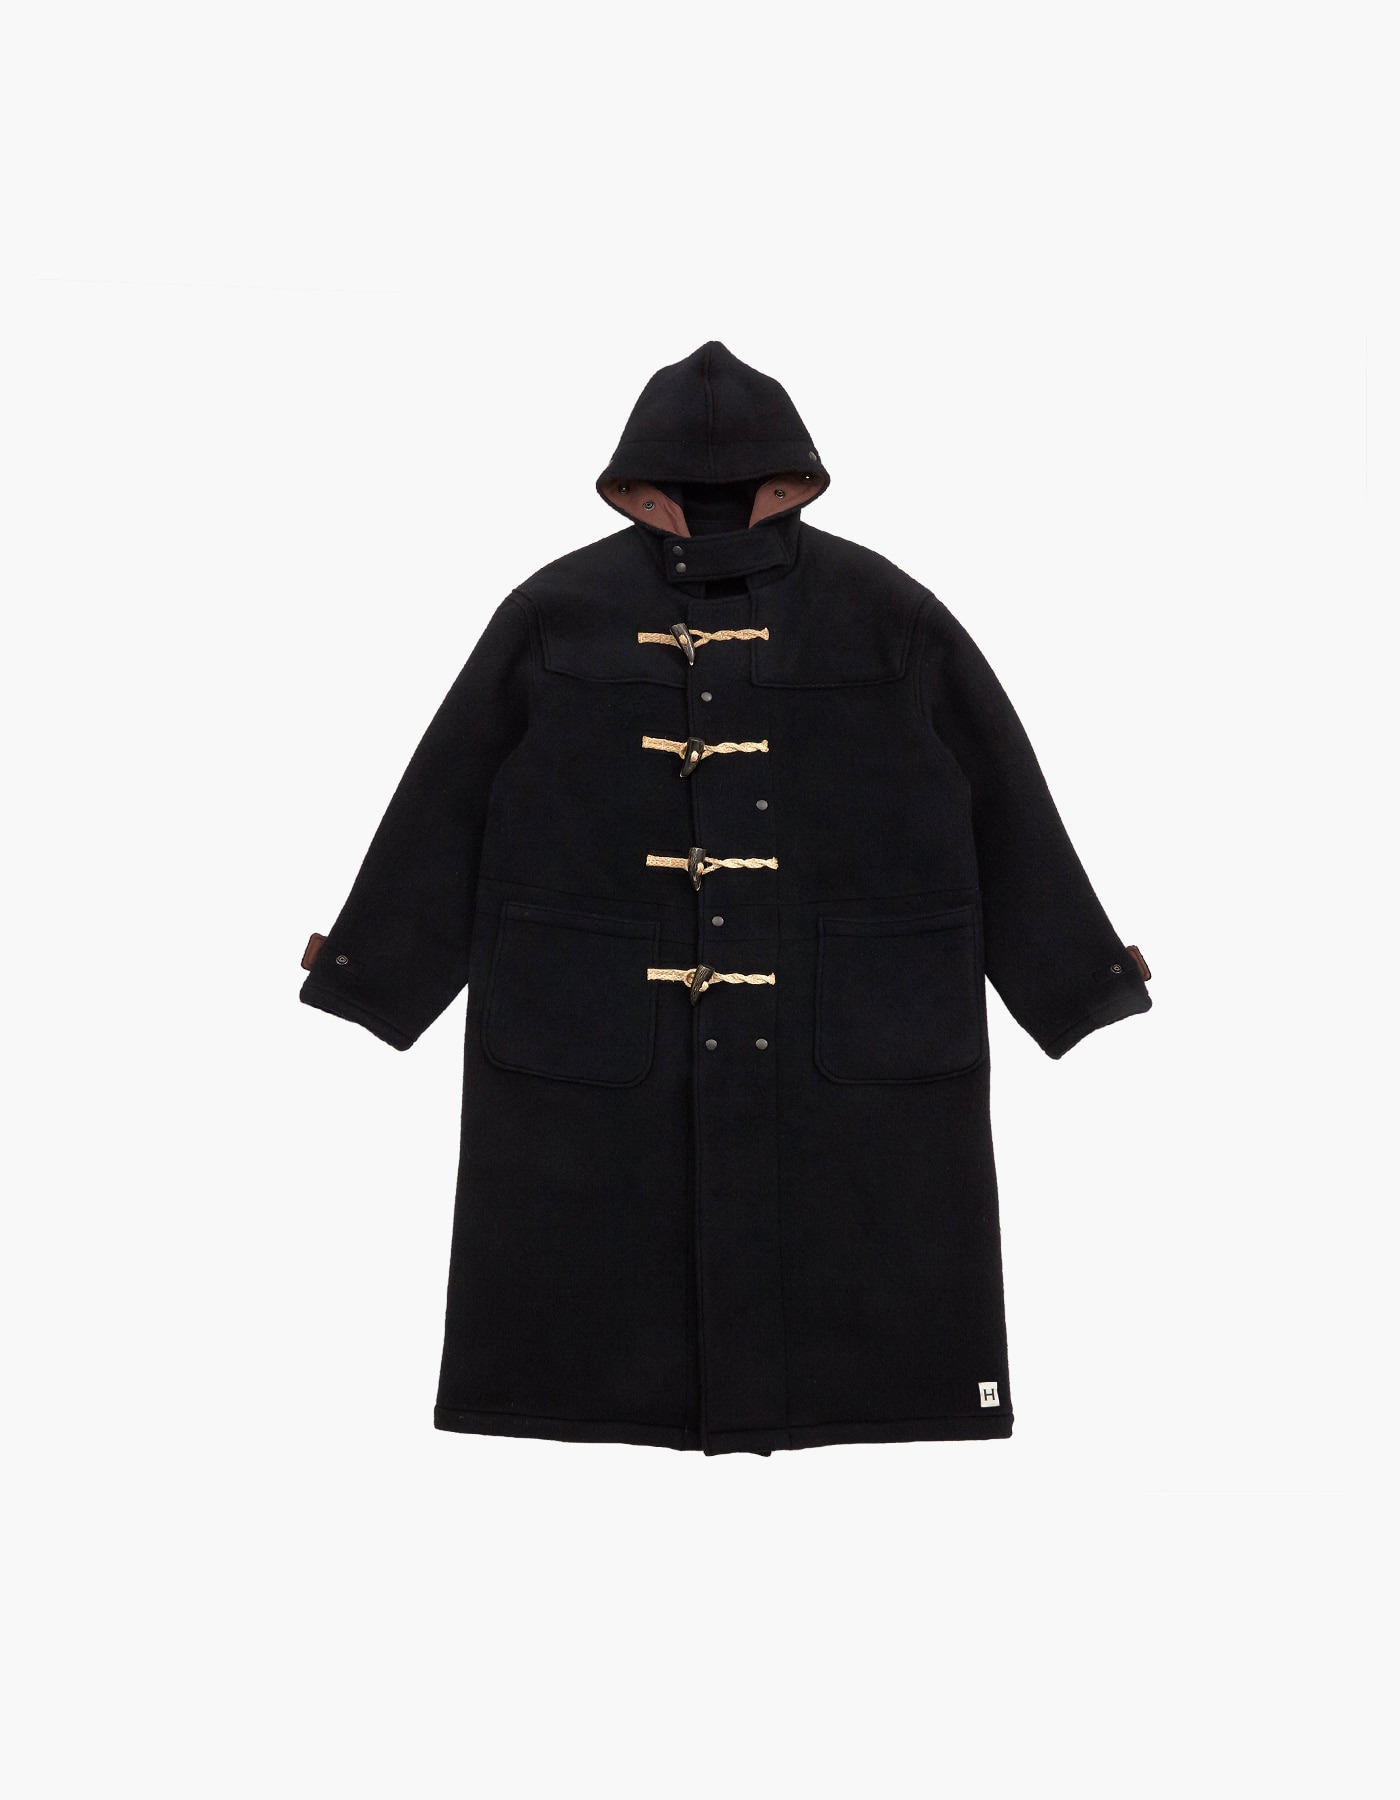 WOOL DUFFLE COAT / BLACK